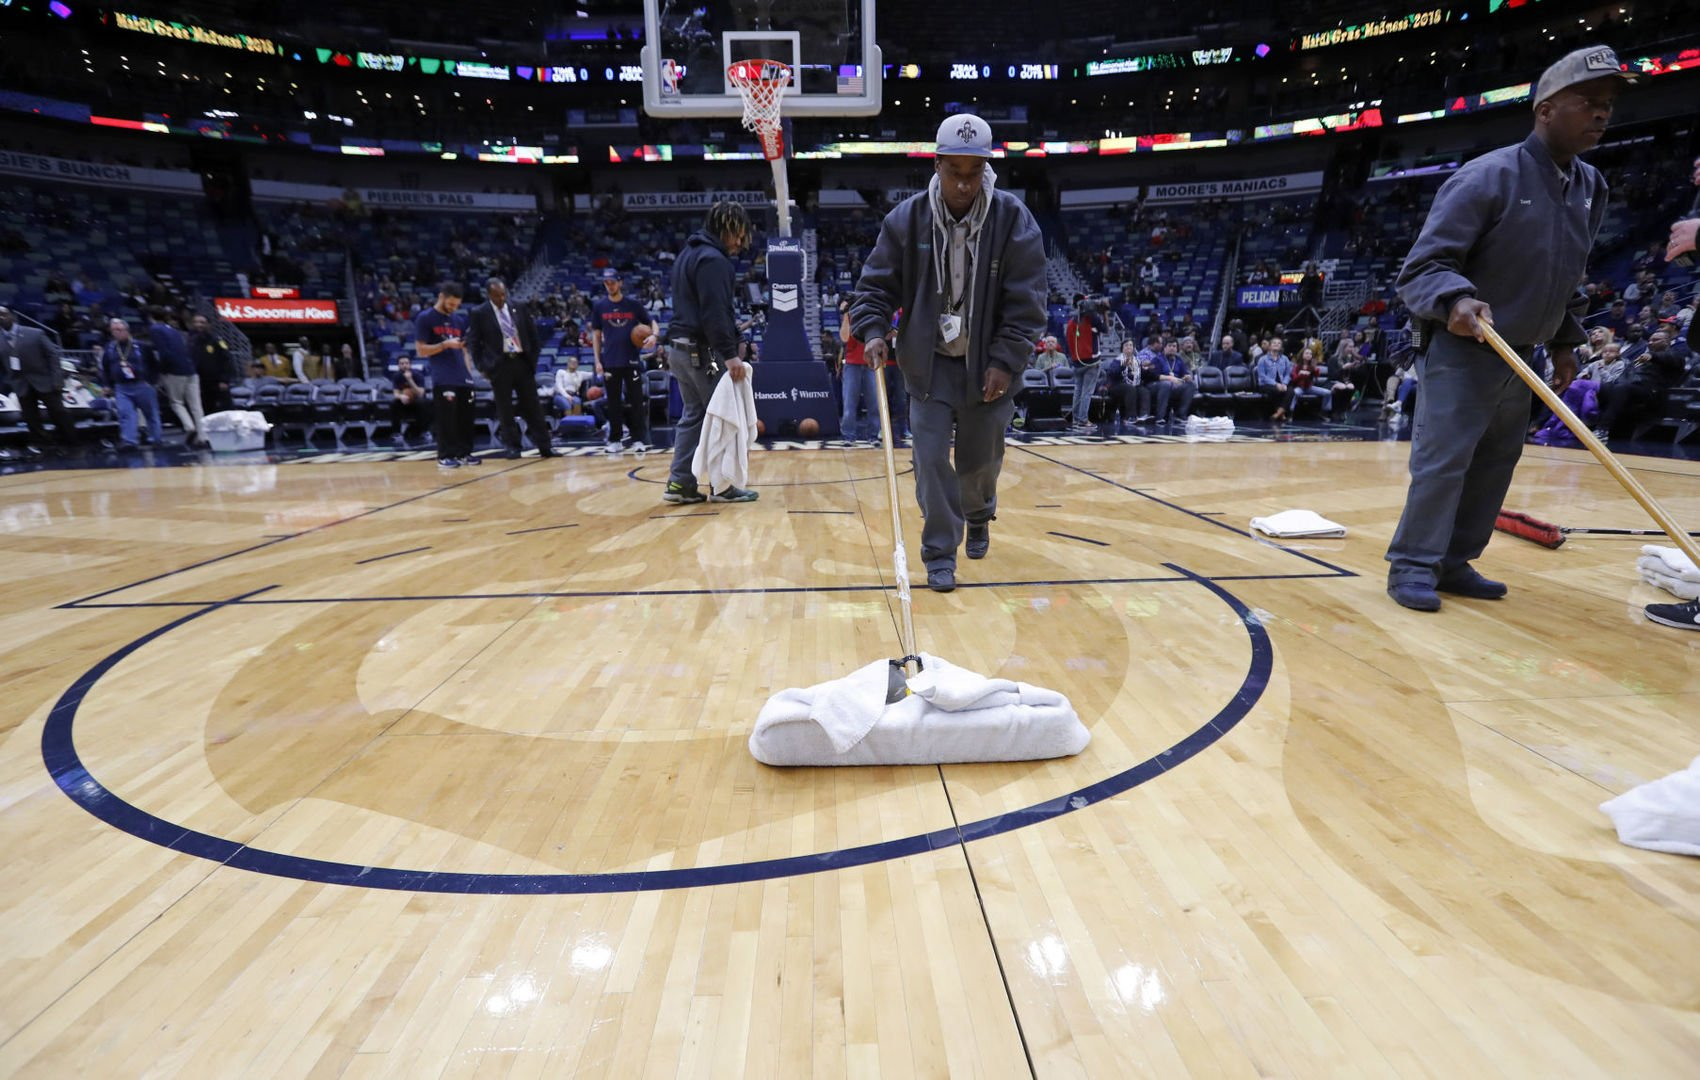 Indiana Pacers-New Orleans Pelicans game delayed due to leaky roof